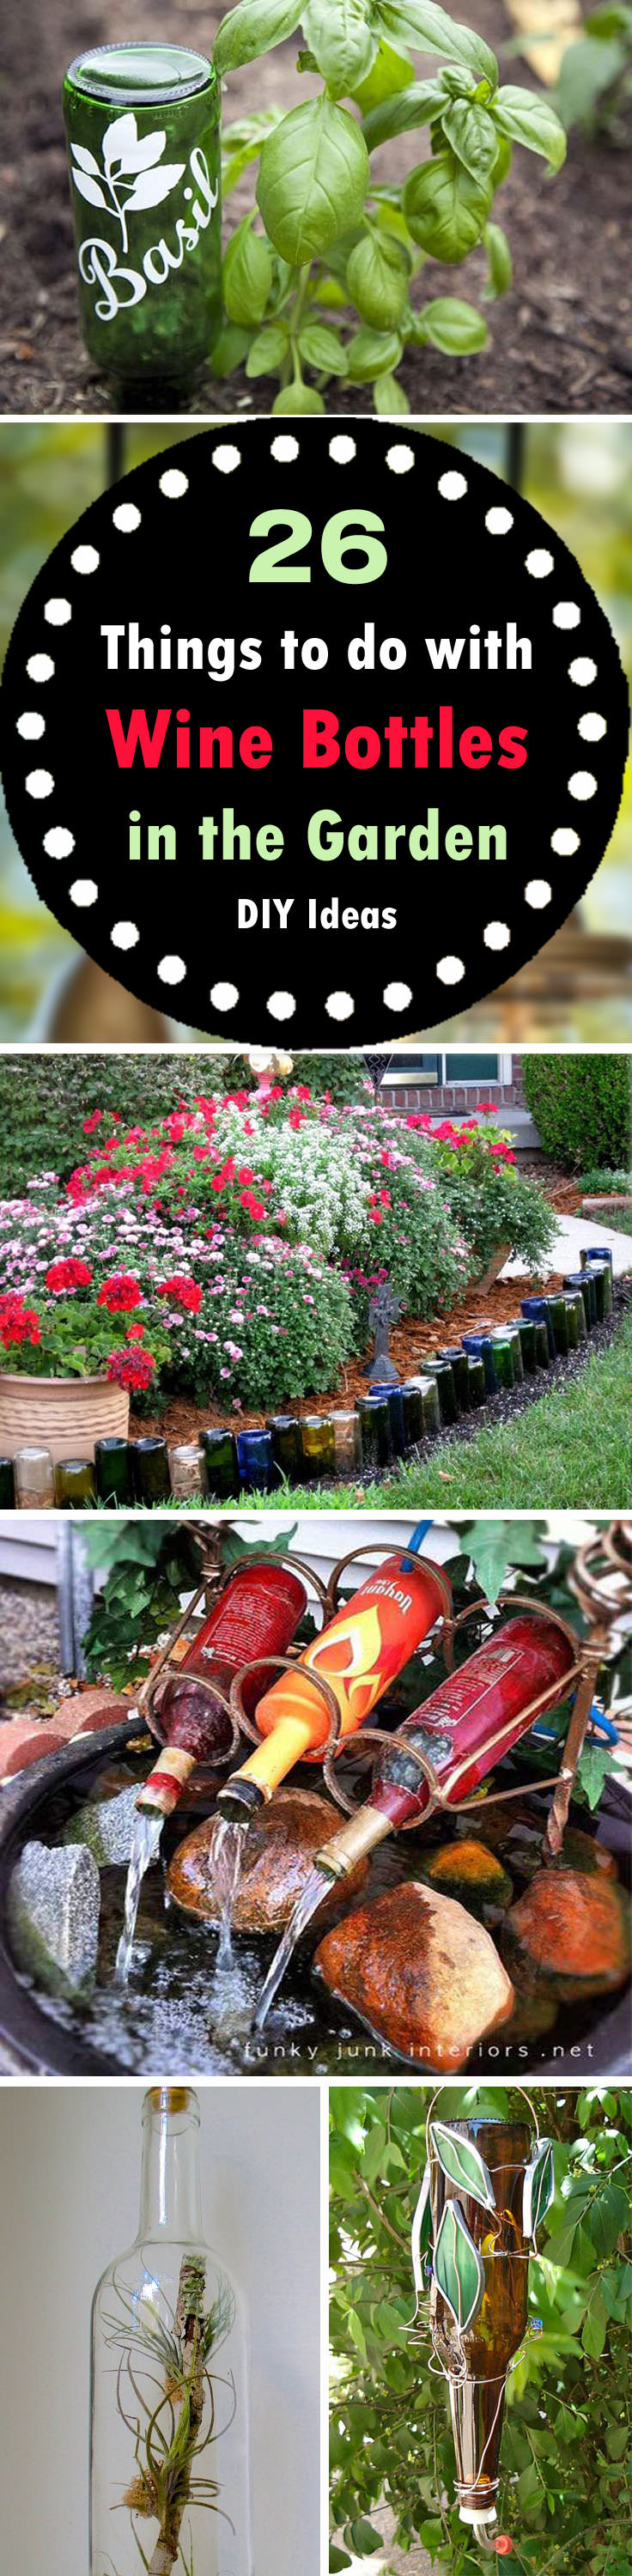 Garden And Landscaping Diy wine bottle ideas for the garden 26 wine bottle uses balcony if you have got empty wine bottles in your home then these 26 diy wine bottle workwithnaturefo